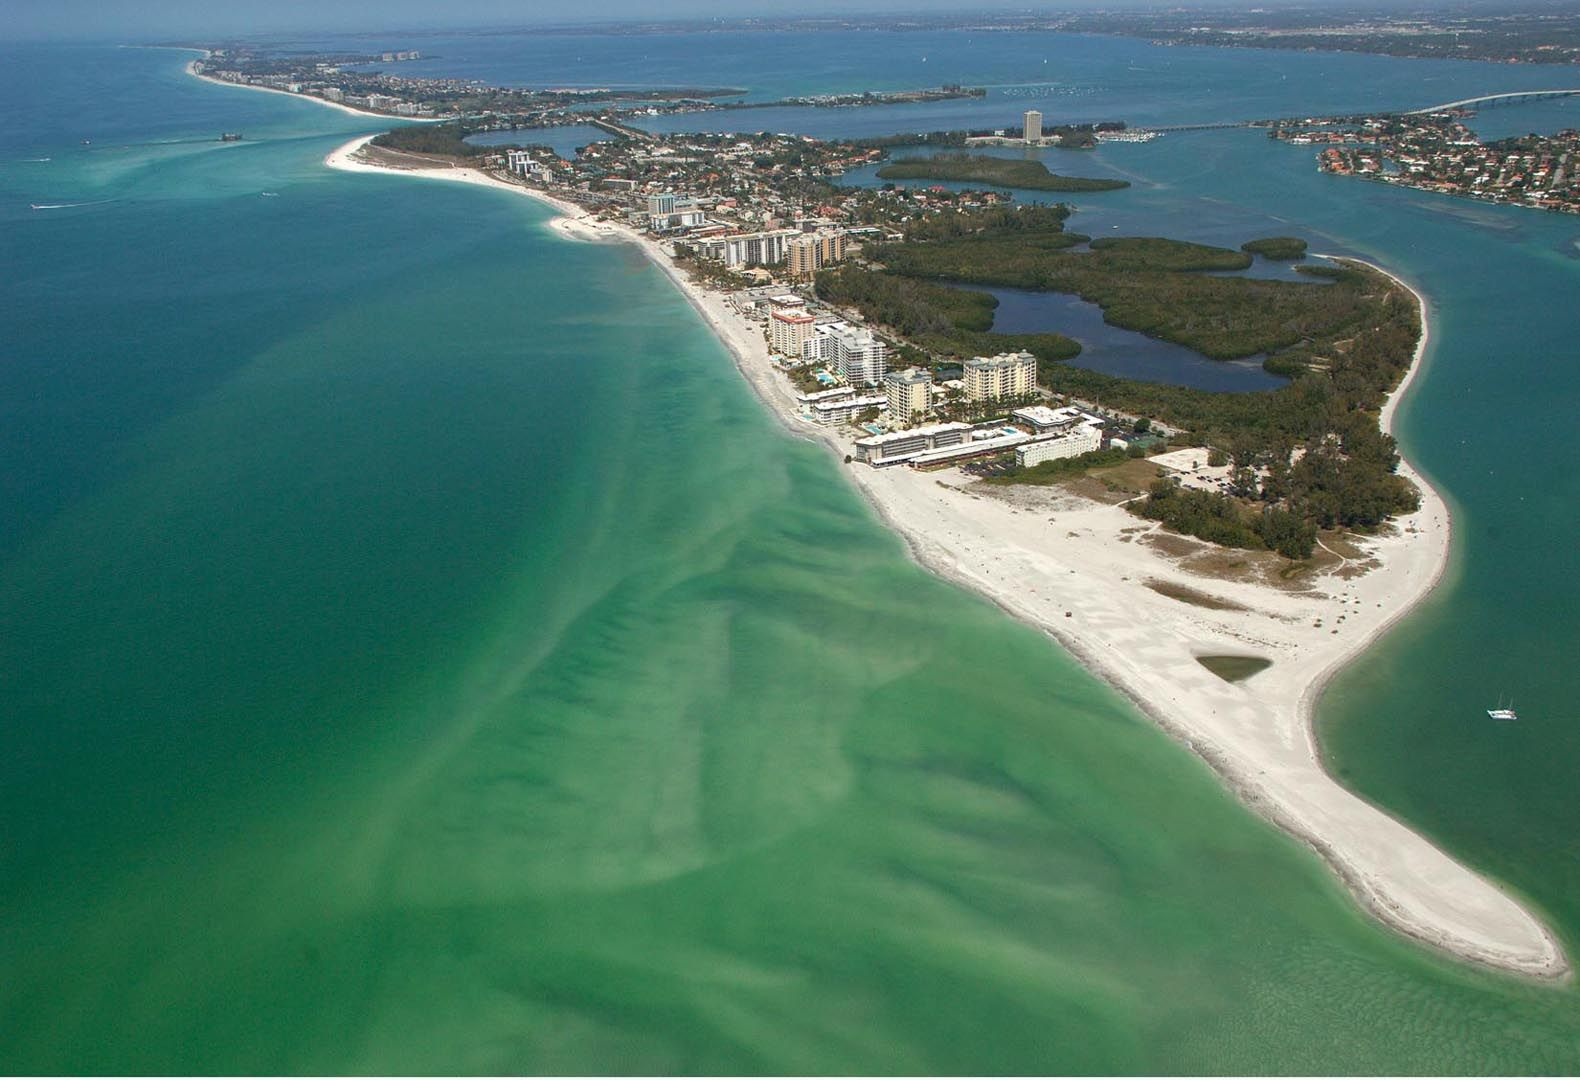 Lido Beach Sarasota Florida Been Here A Times The Last Time Was For Half Marathon Race Route Included Crossing Bridge In